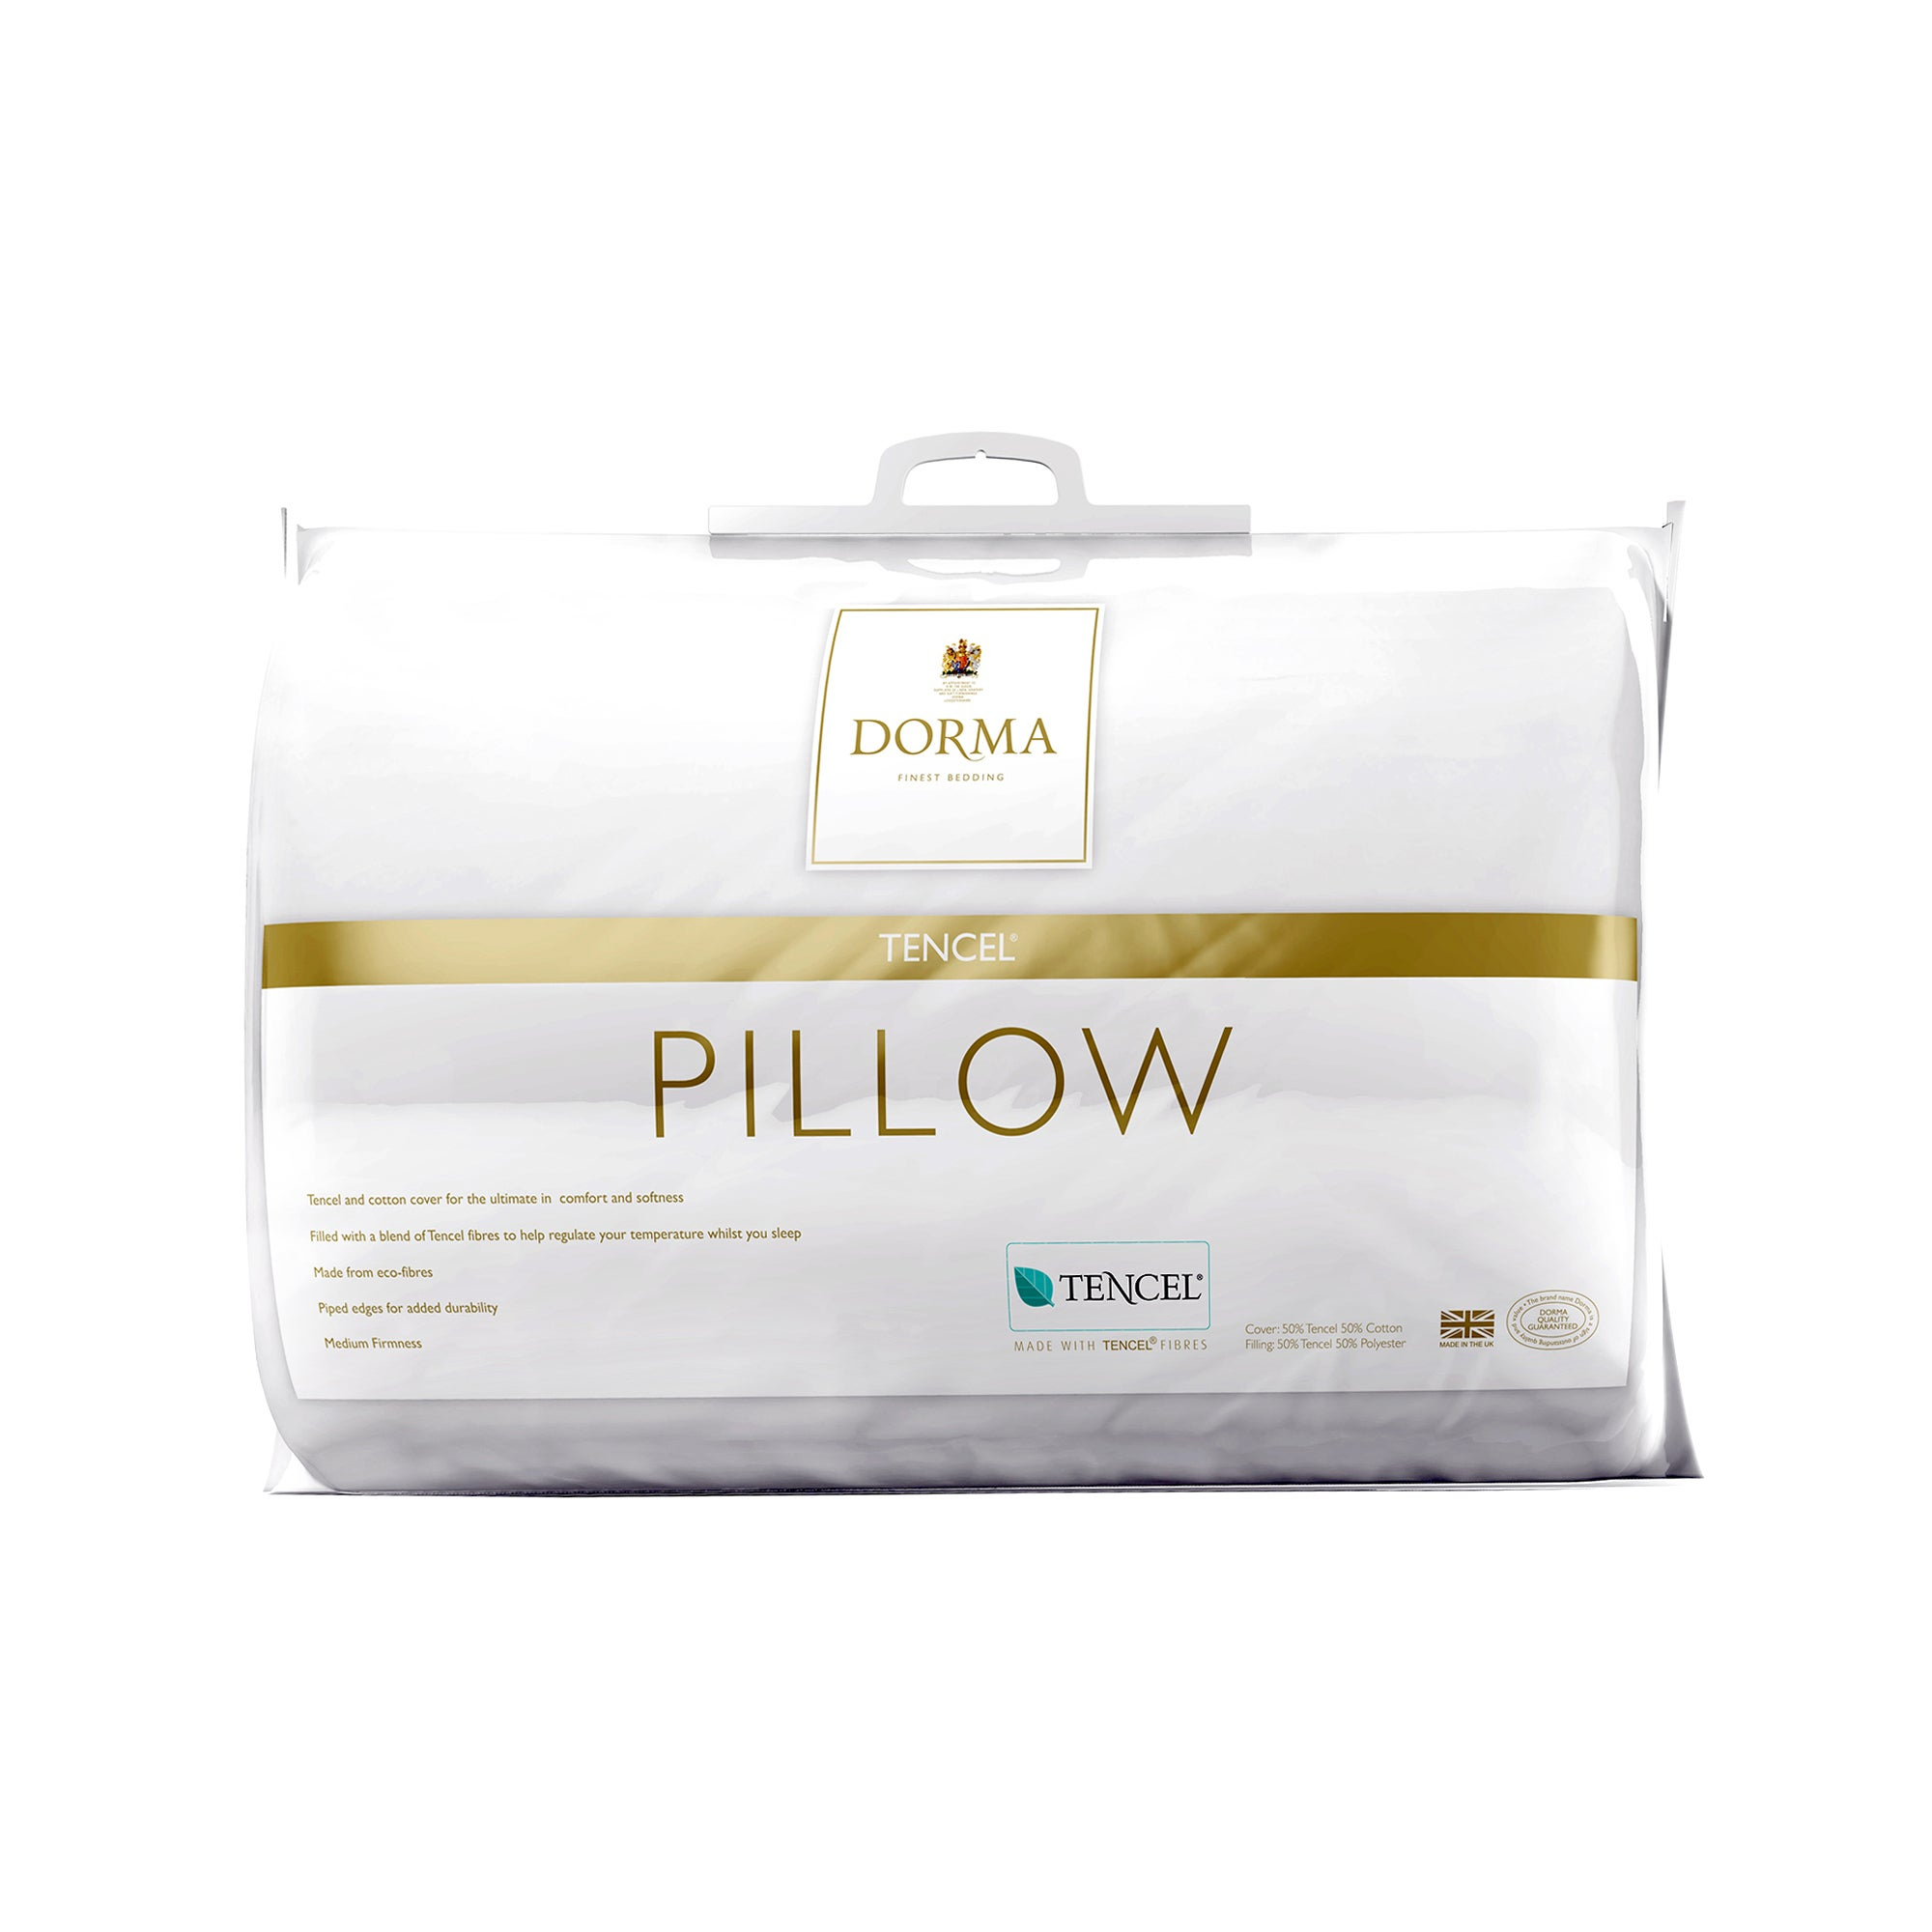 Dorma Tencel Medium Pillow